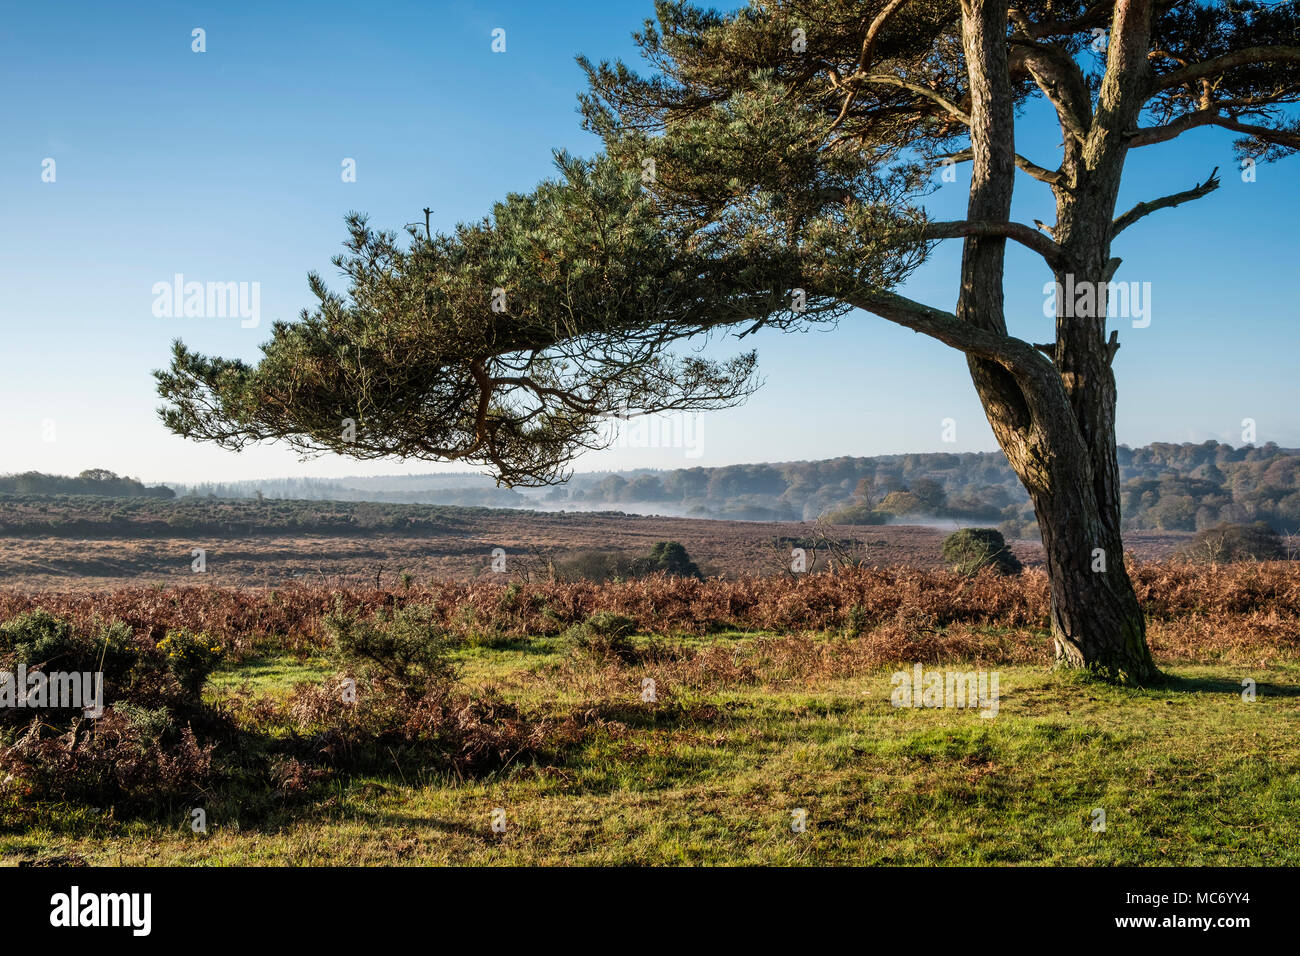 A scenic landscape in The New Forest with a lone Pine tree in the foreground on heathland in Hampshire, UK. - Stock Image